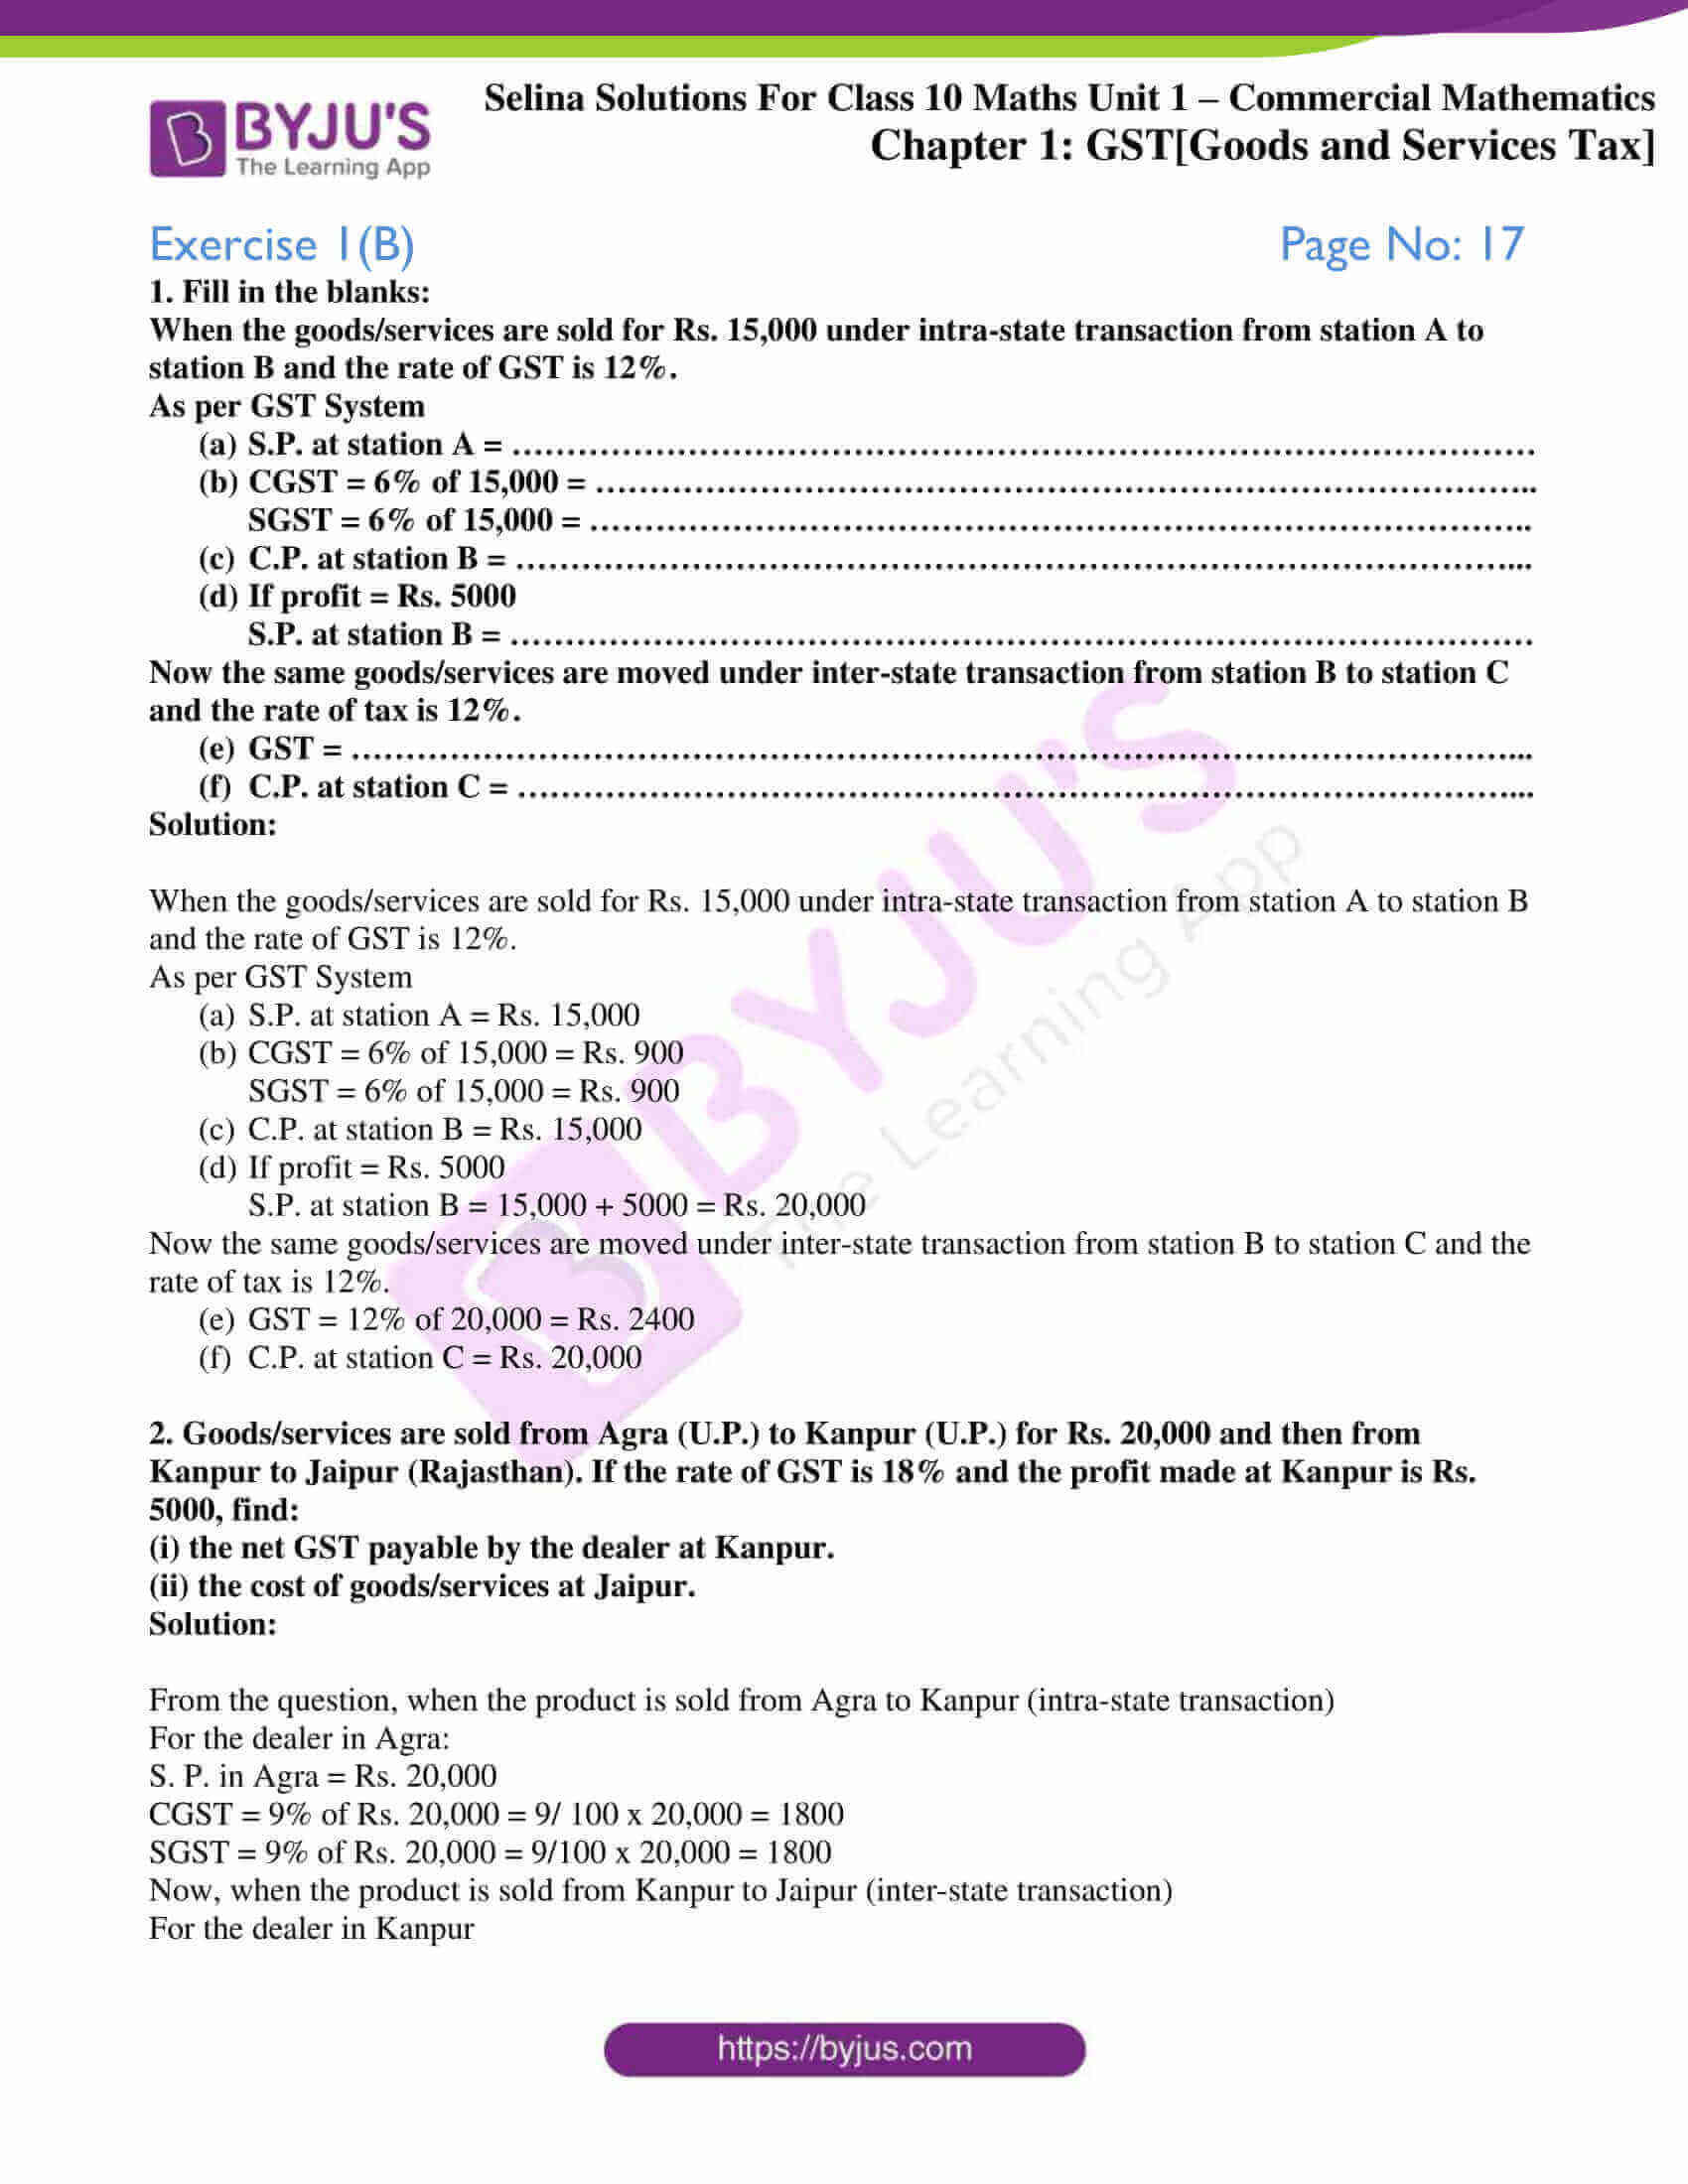 selina solution concise maths class 10 chapter 1 ex b 1